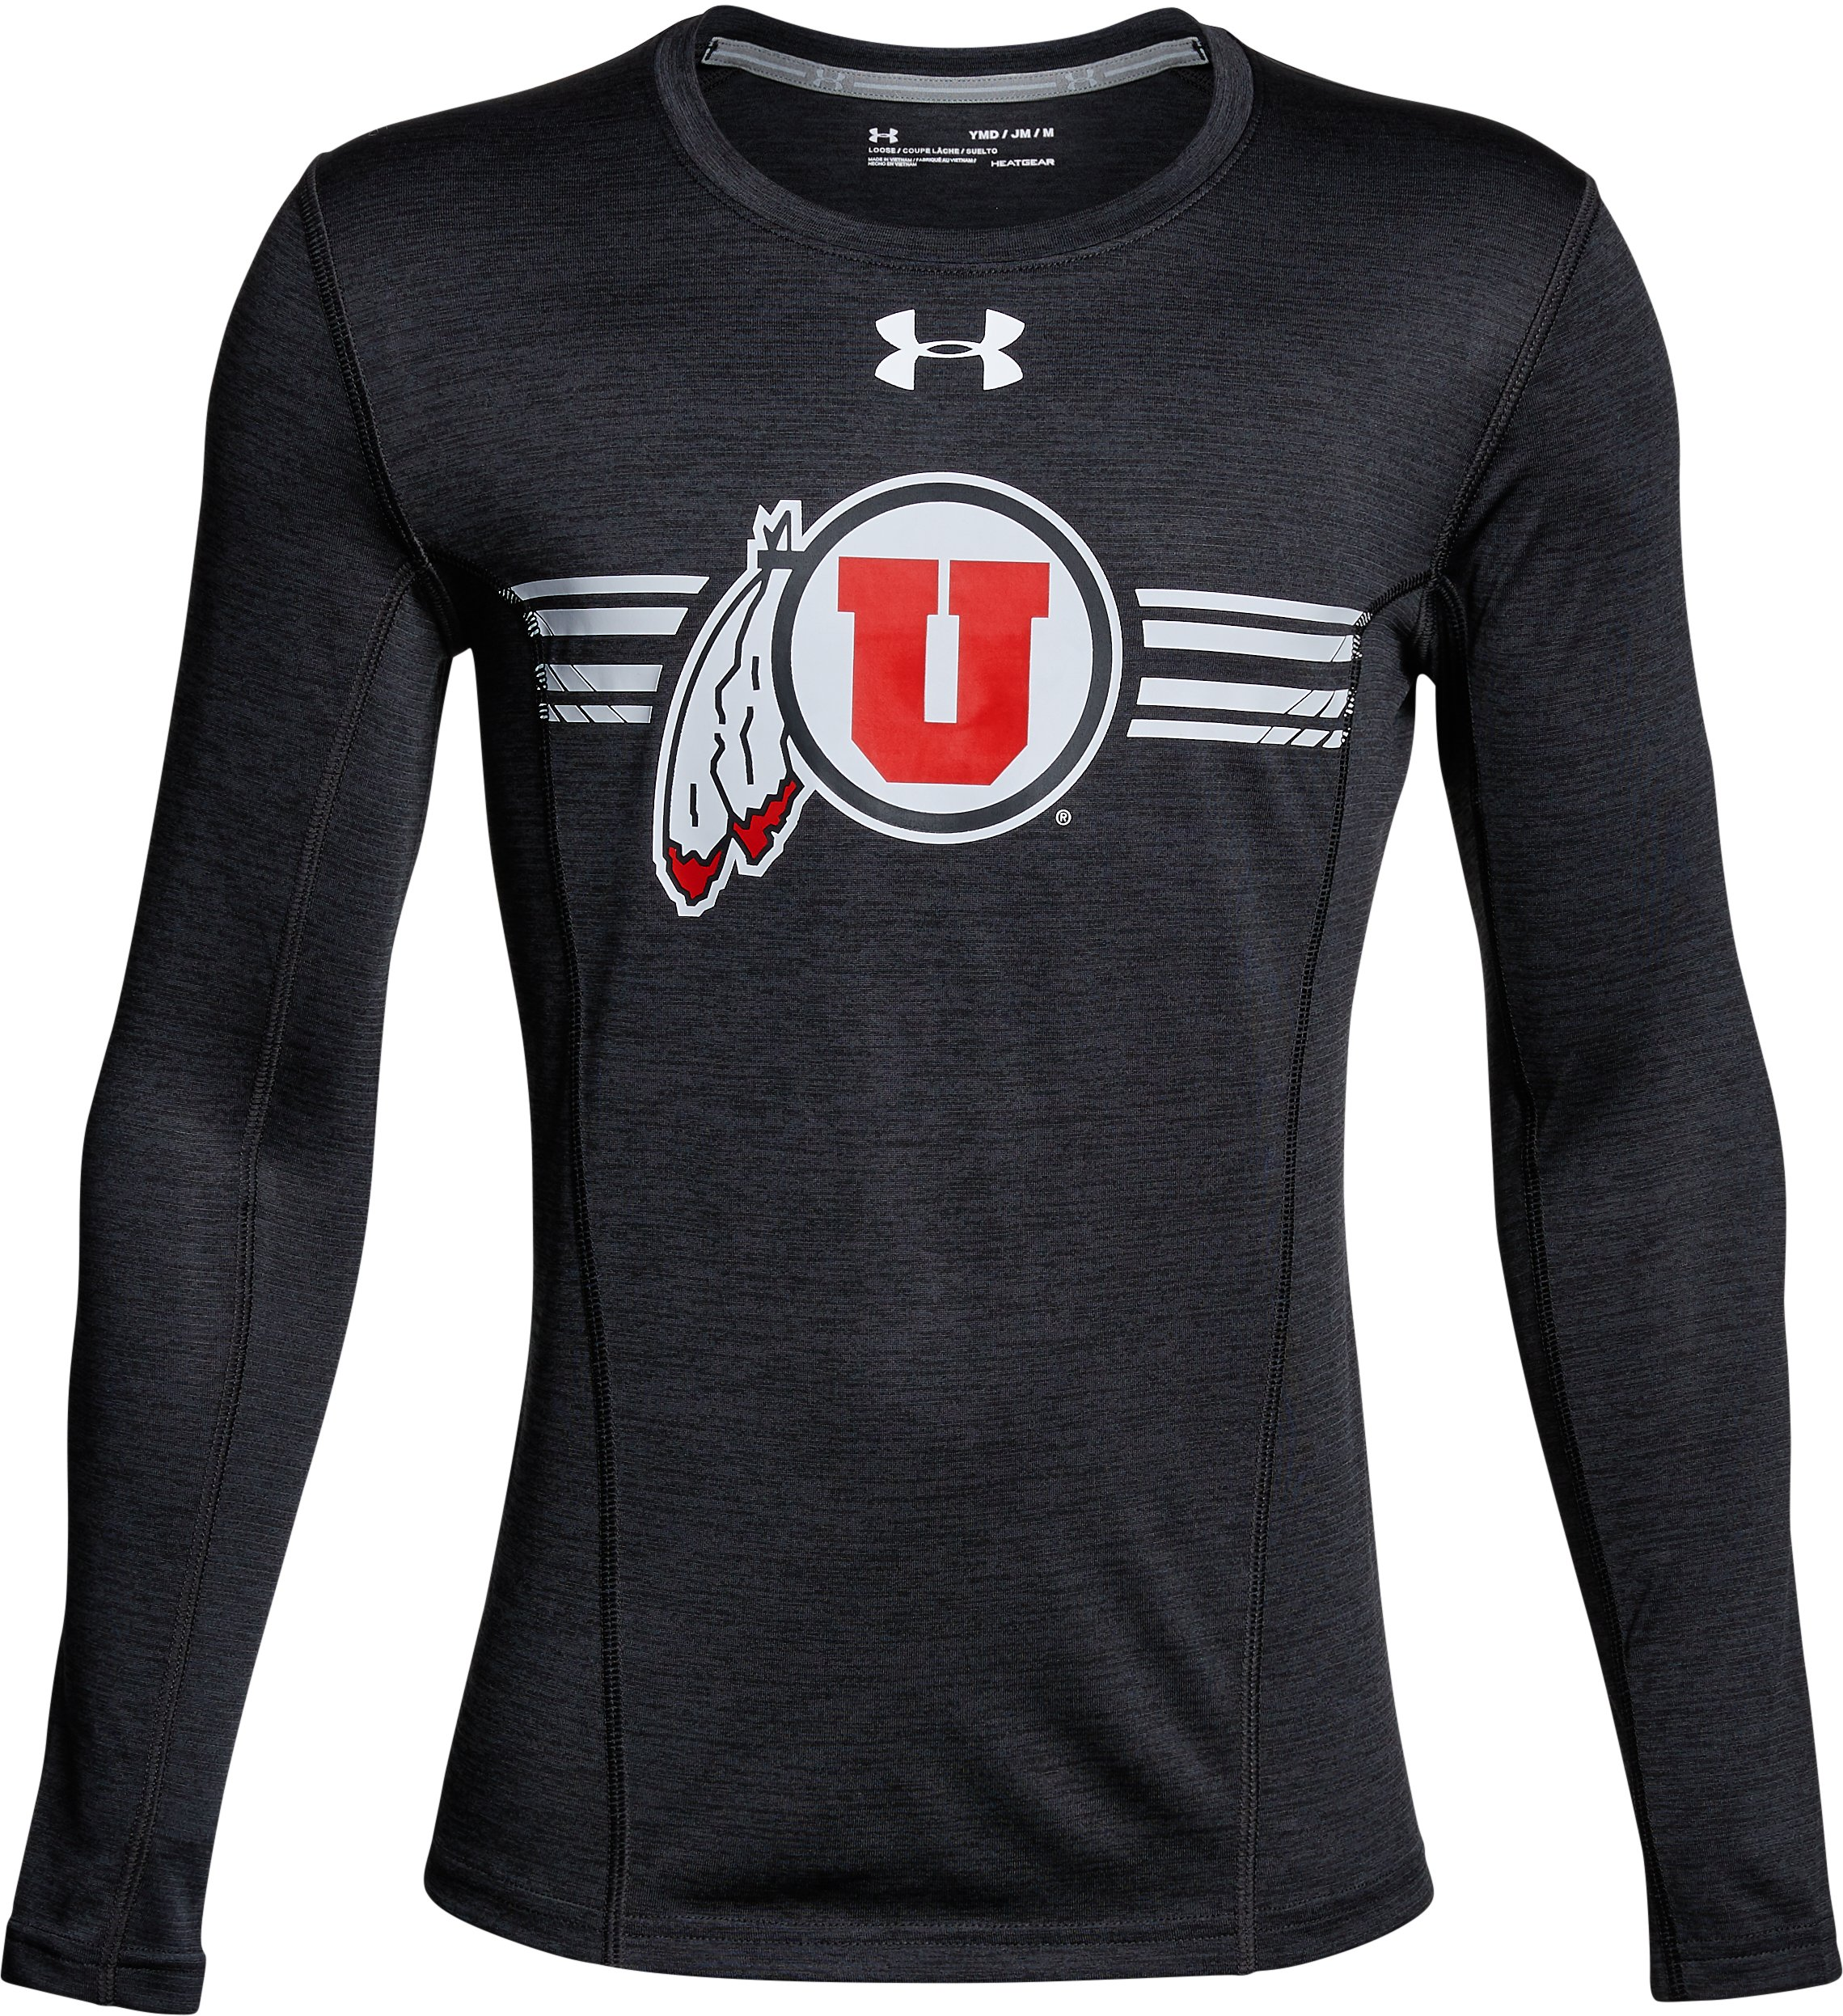 Boys' Utah Long Sleeve Training T-Shirt, Black ,